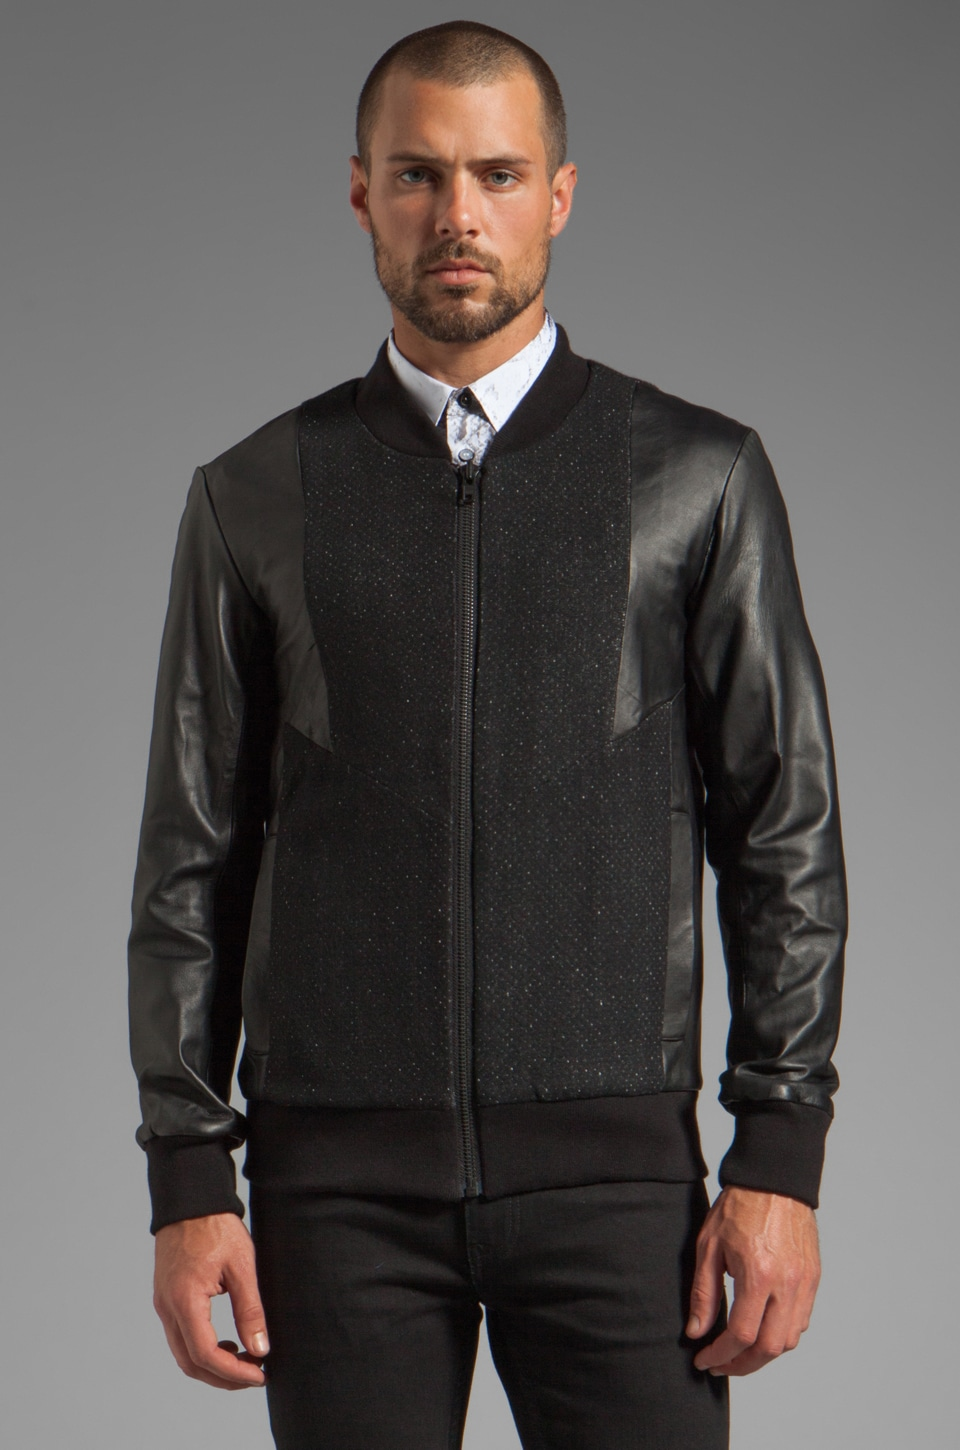 Sons of Heroes Leather Ziggy Bomber Jacket in Black